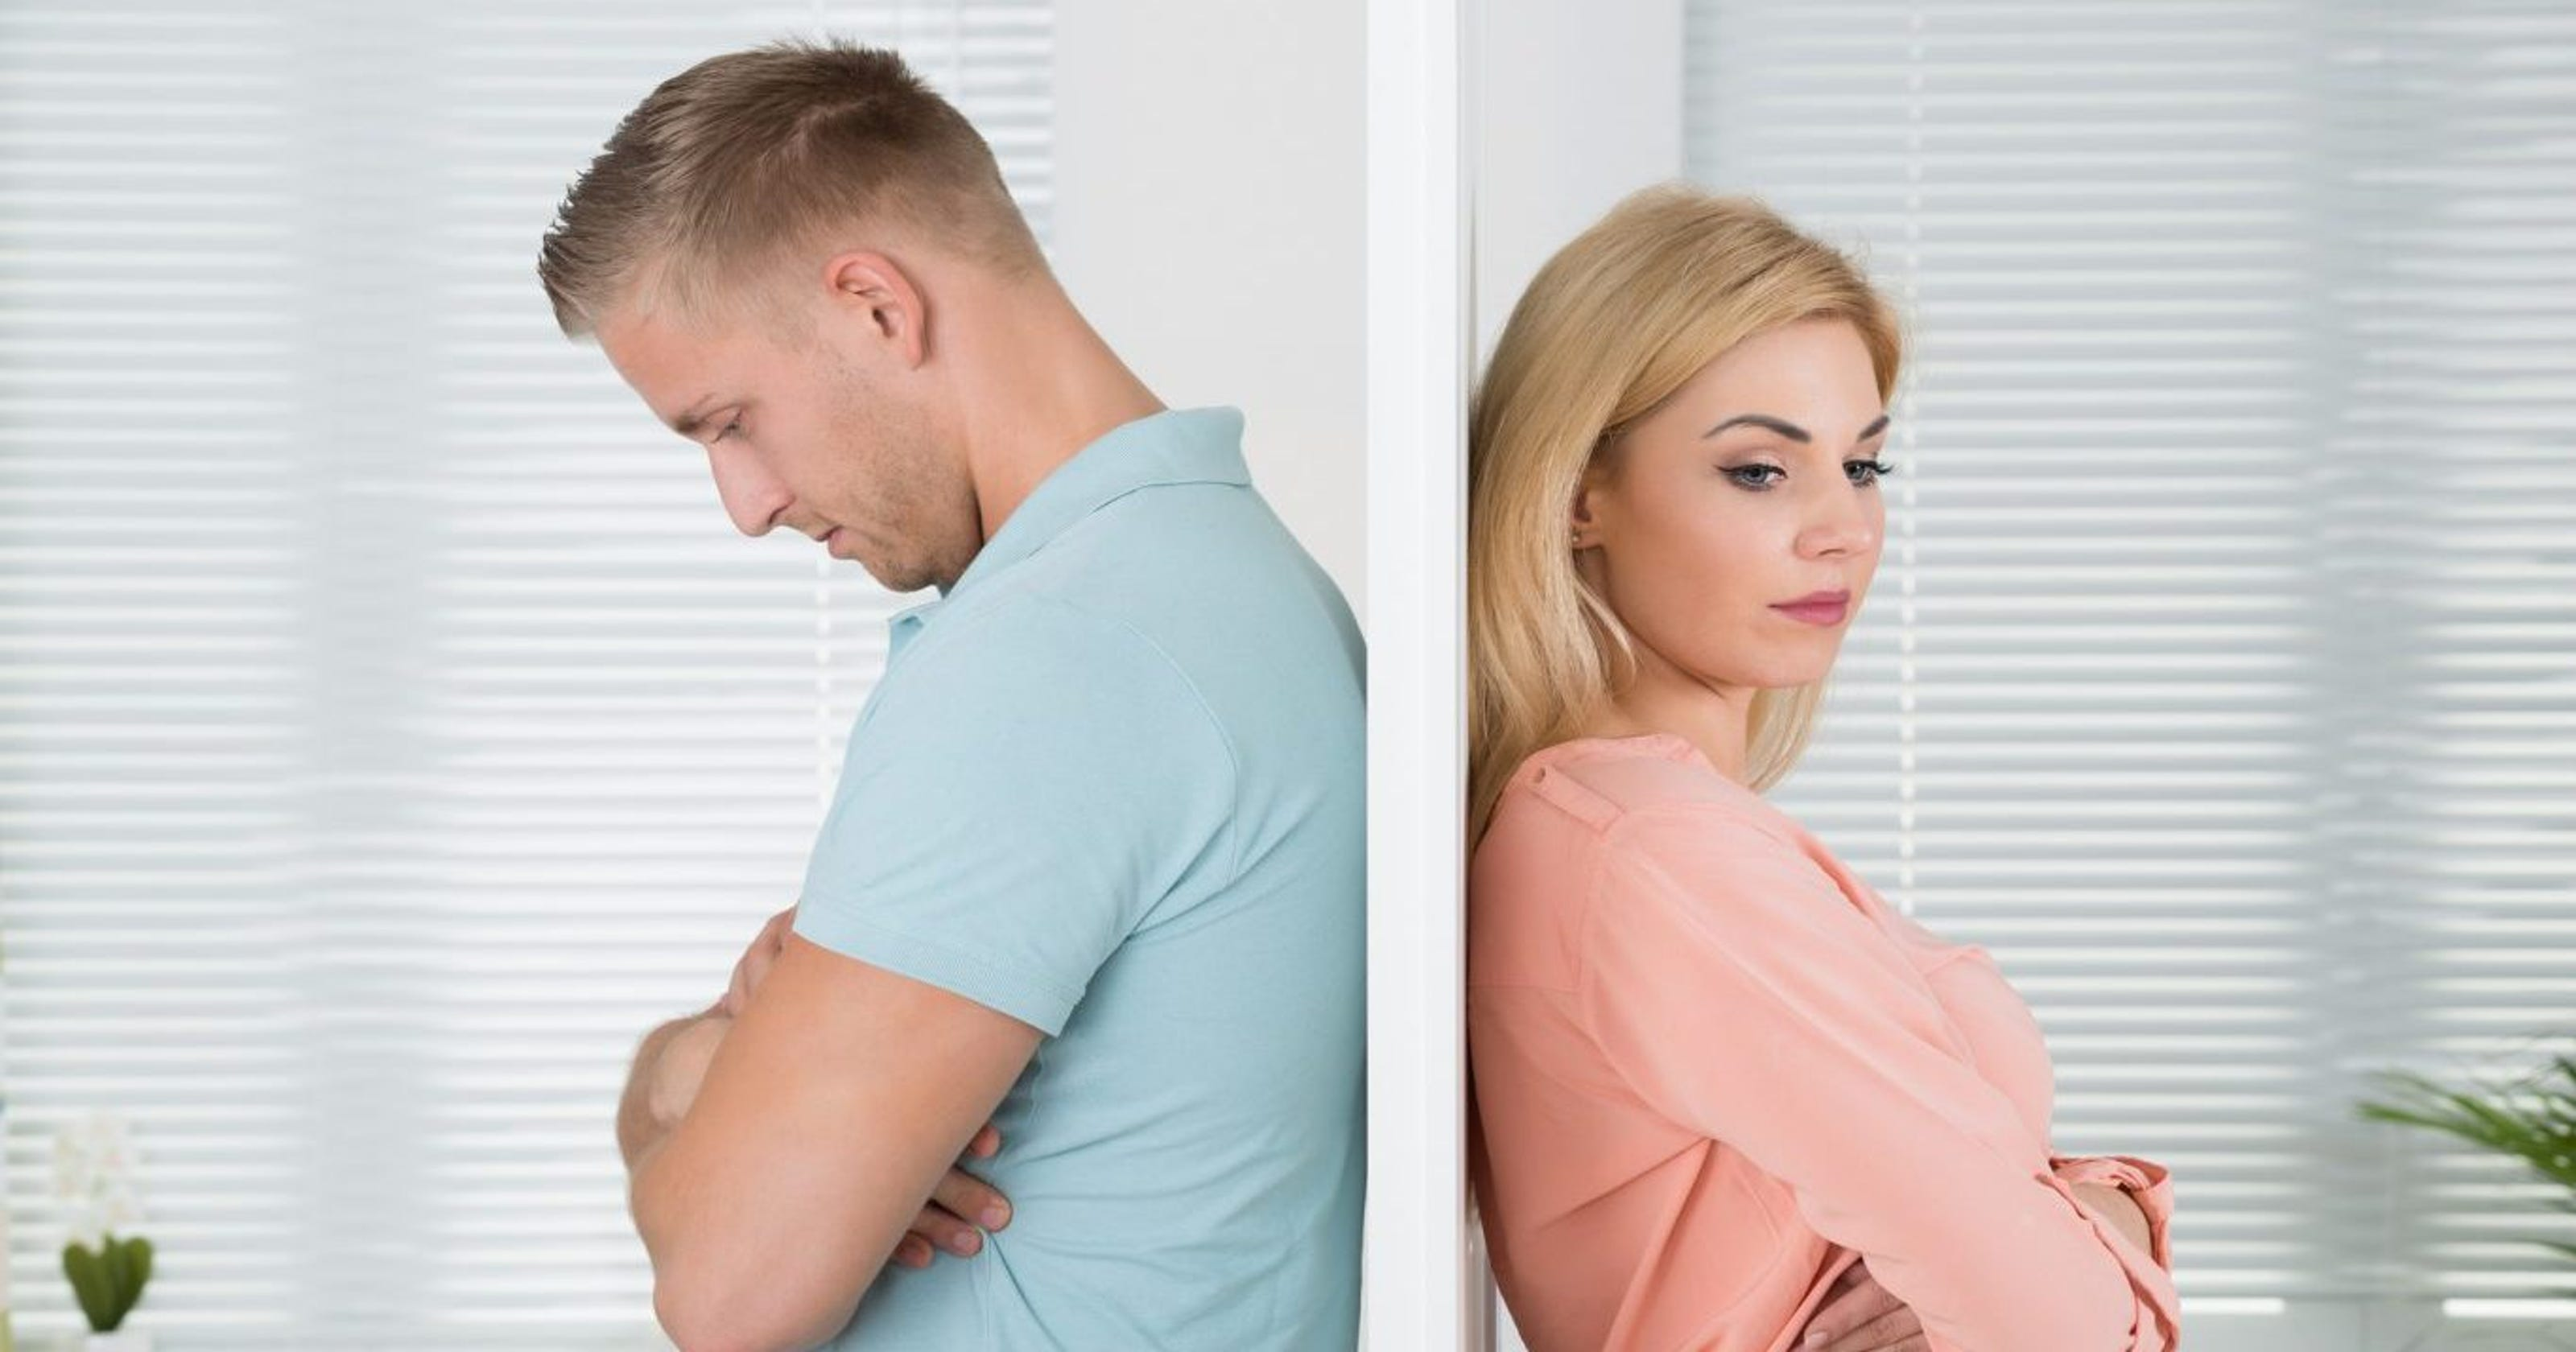 Highest divorce rate by state: Cities where couples split up the most